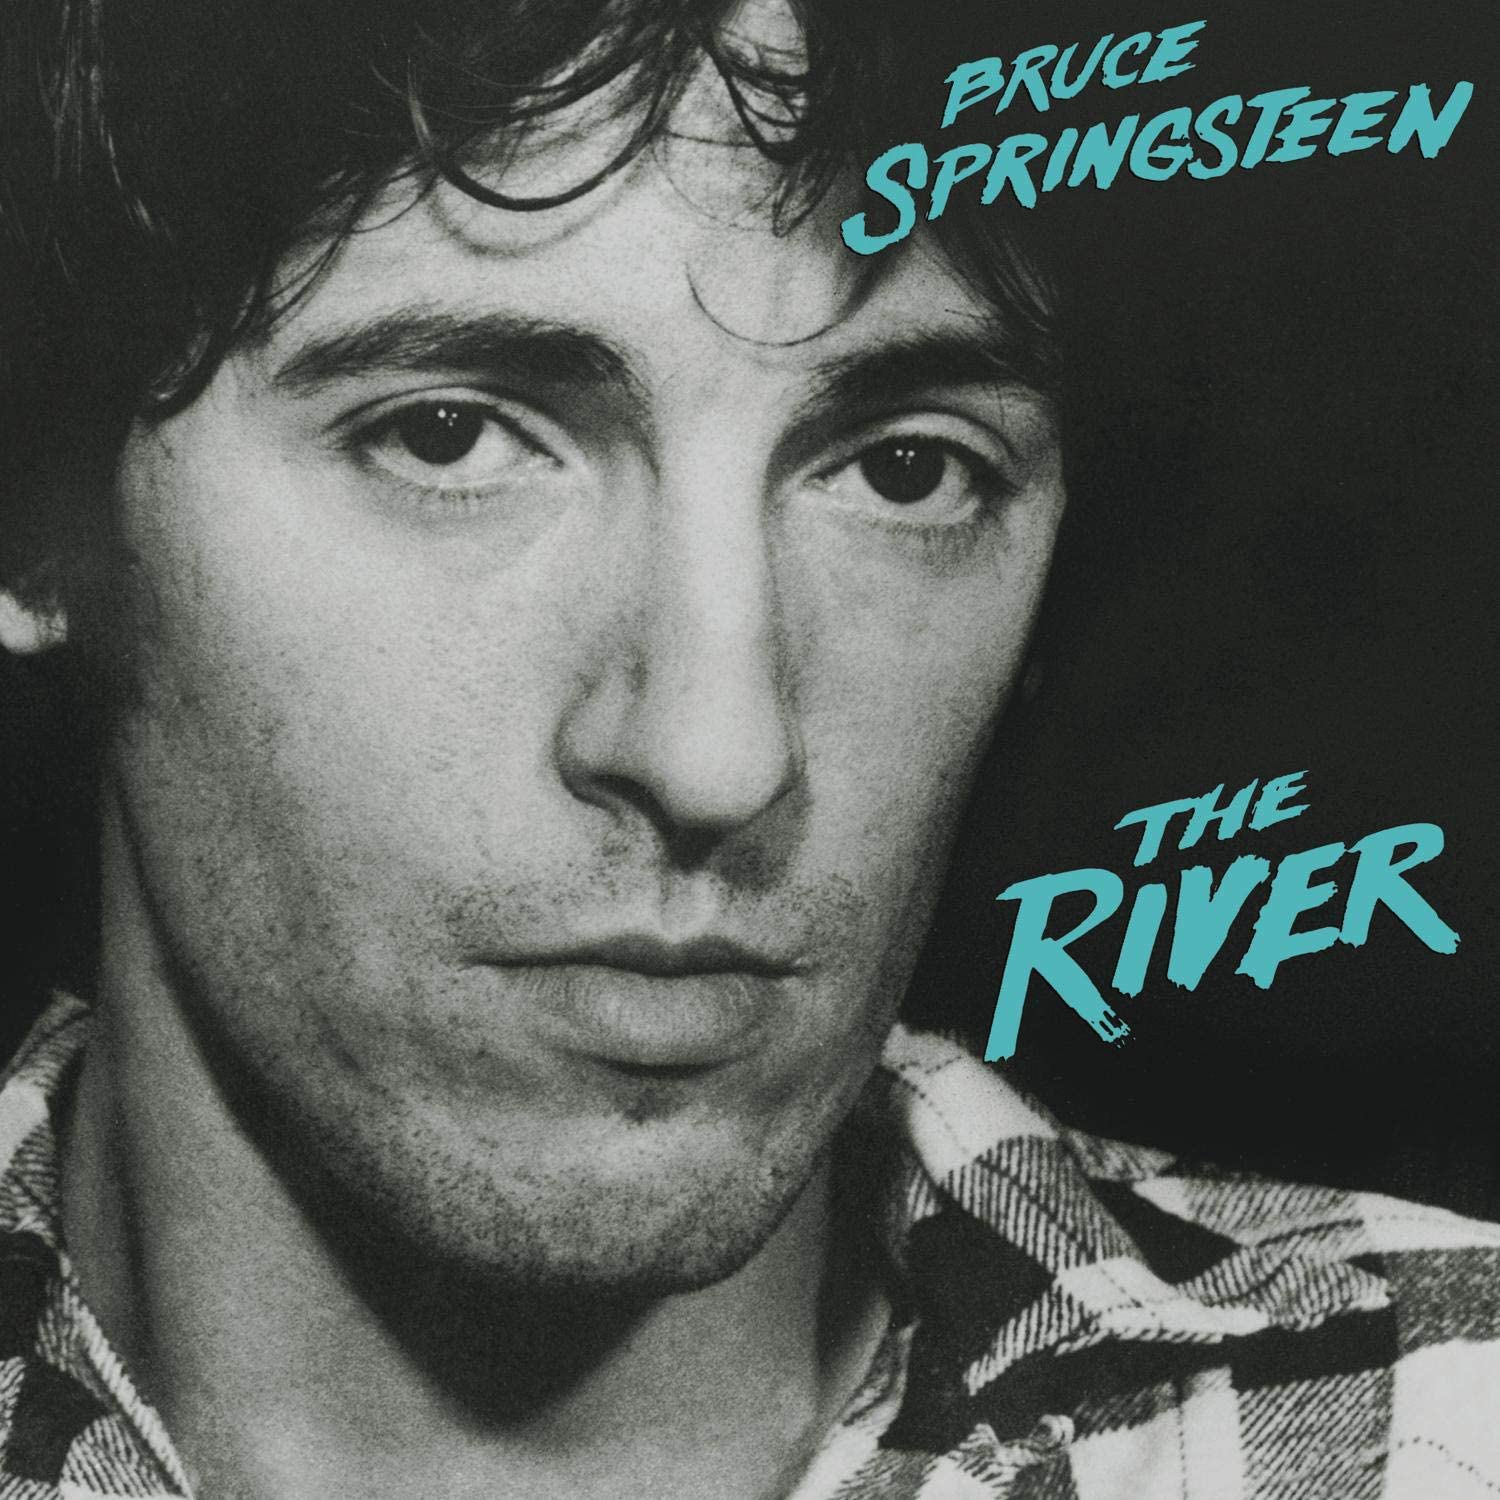 Bruce Springsteen - The River (Double Album)